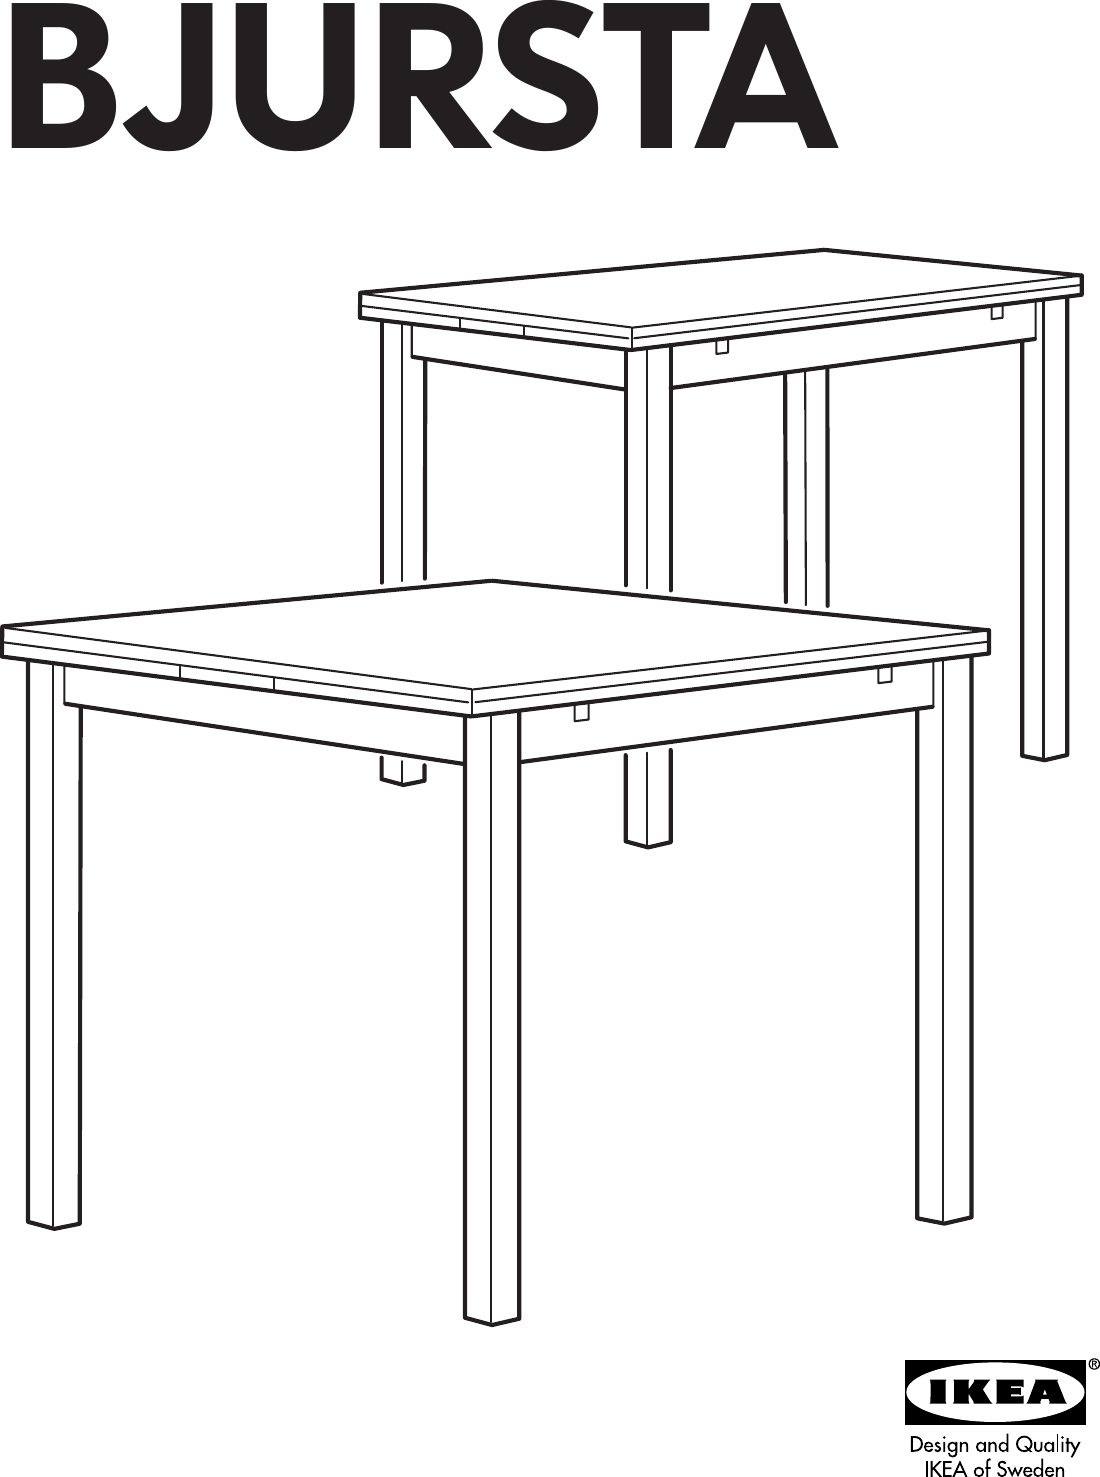 Ikea Bjursta Extendable Dining Table 20 28 35 X35 Assembly